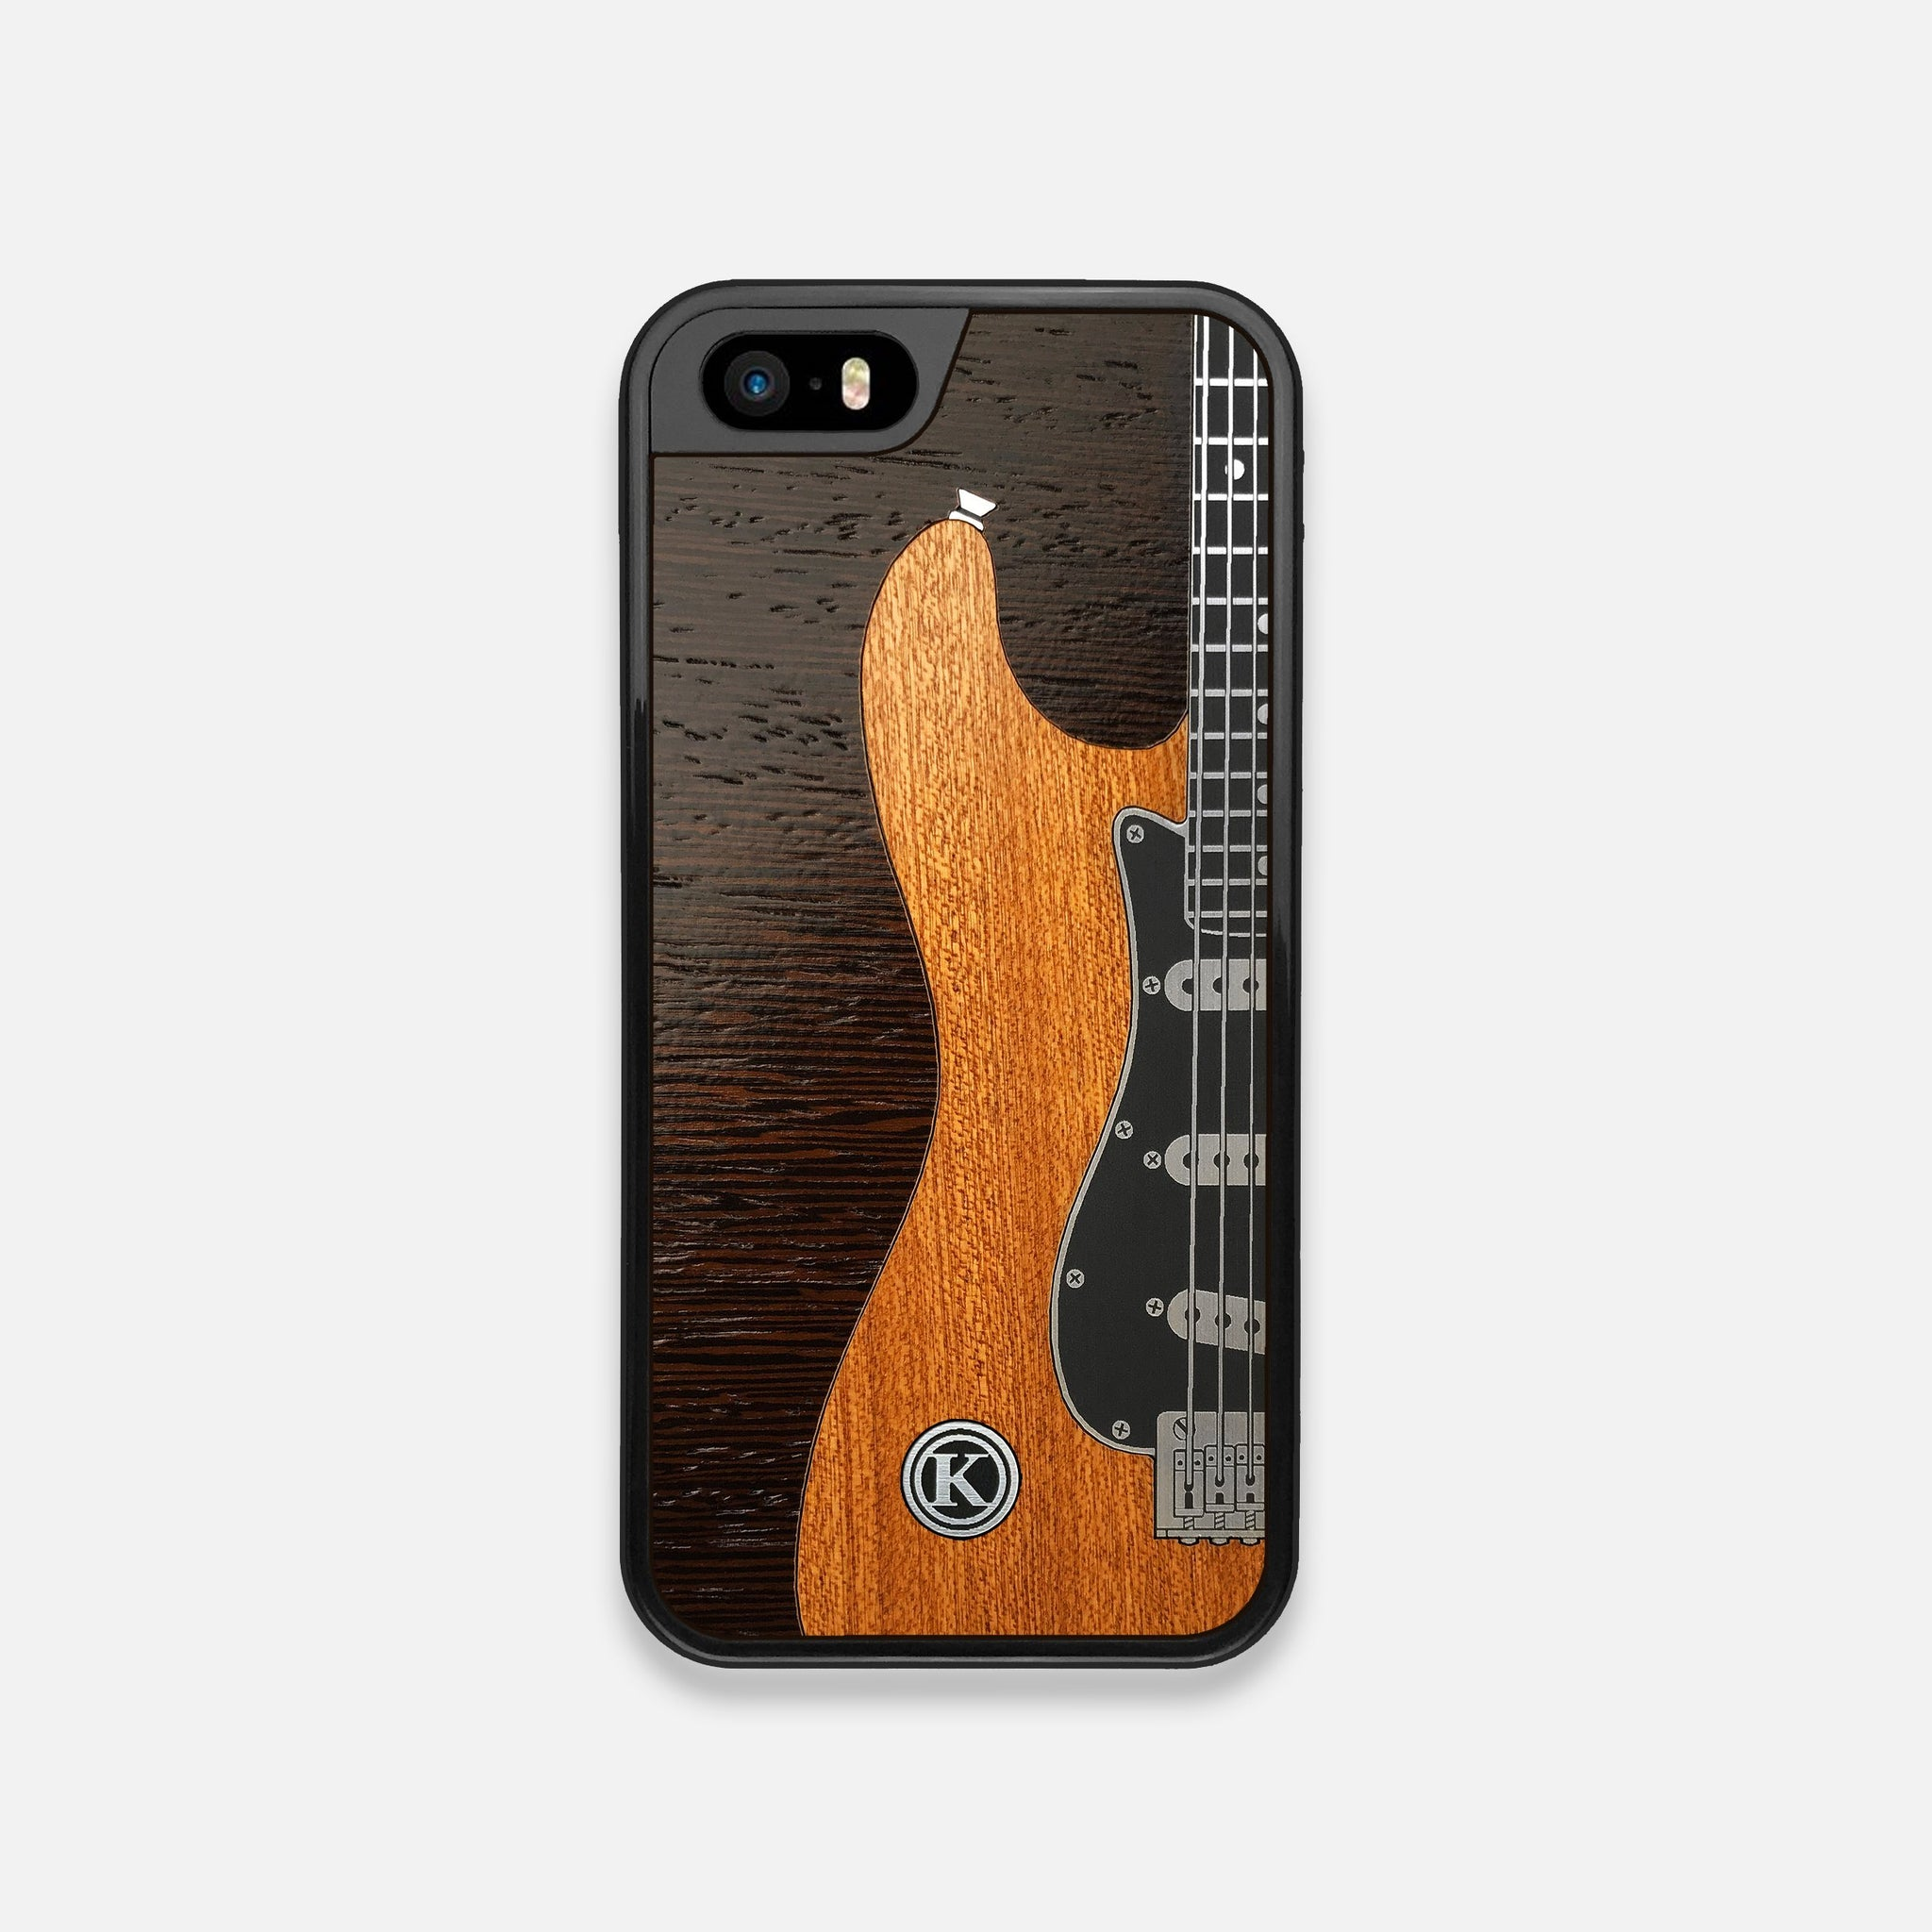 Front view of the Reverb Guitar Wood and Metallic  iPhone 5 Case by Keyway Designs